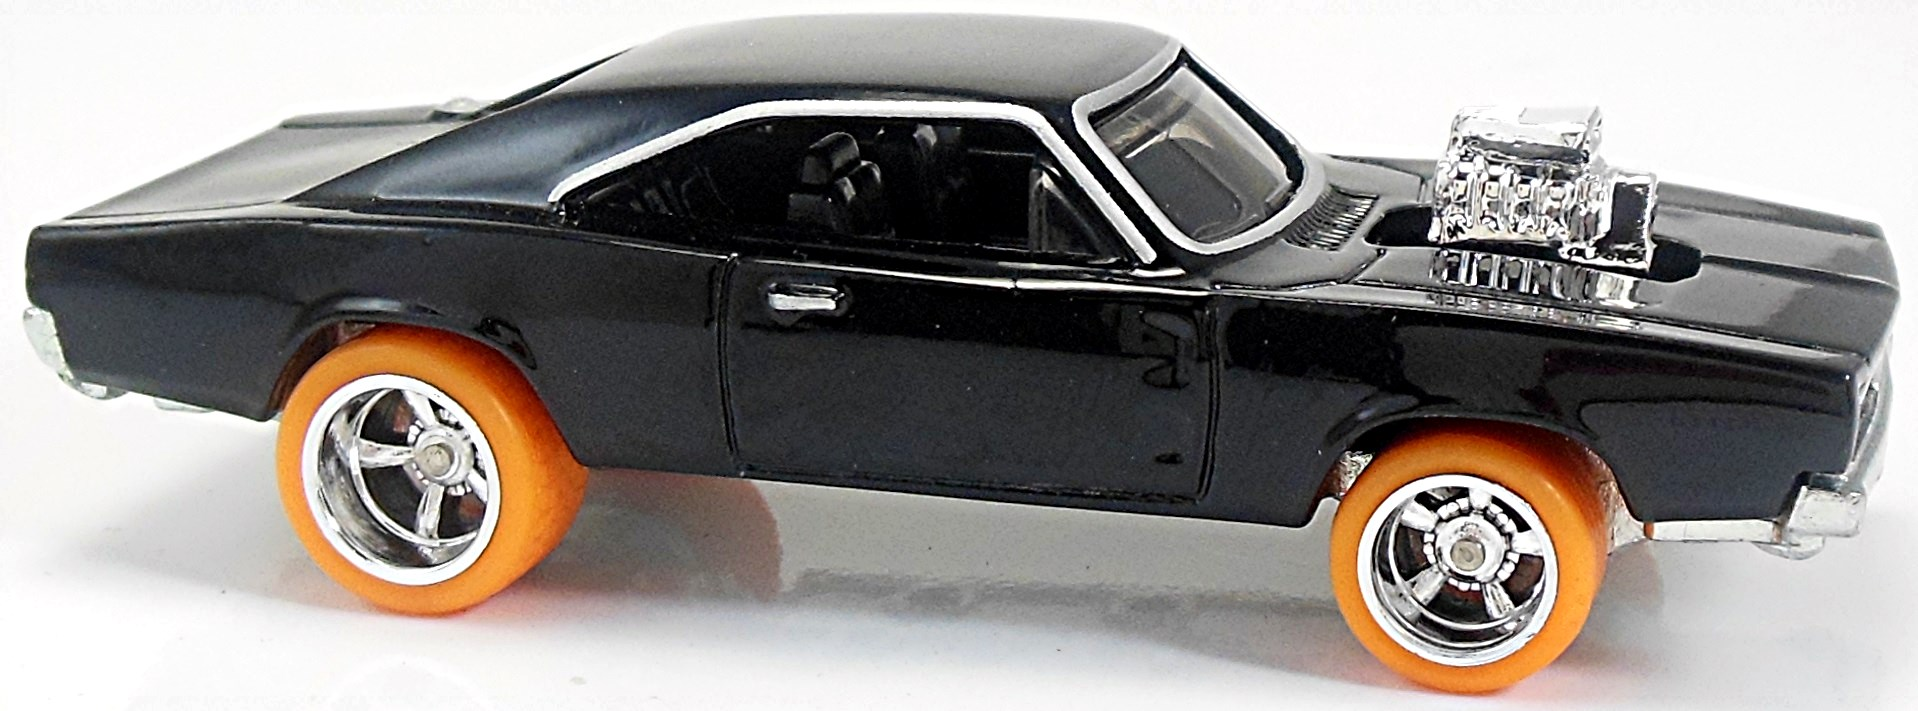 Dodge Charger Rt For Sale >> Ghost Rider Charger - 80mm - 2018 | Hot Wheels Newsletter